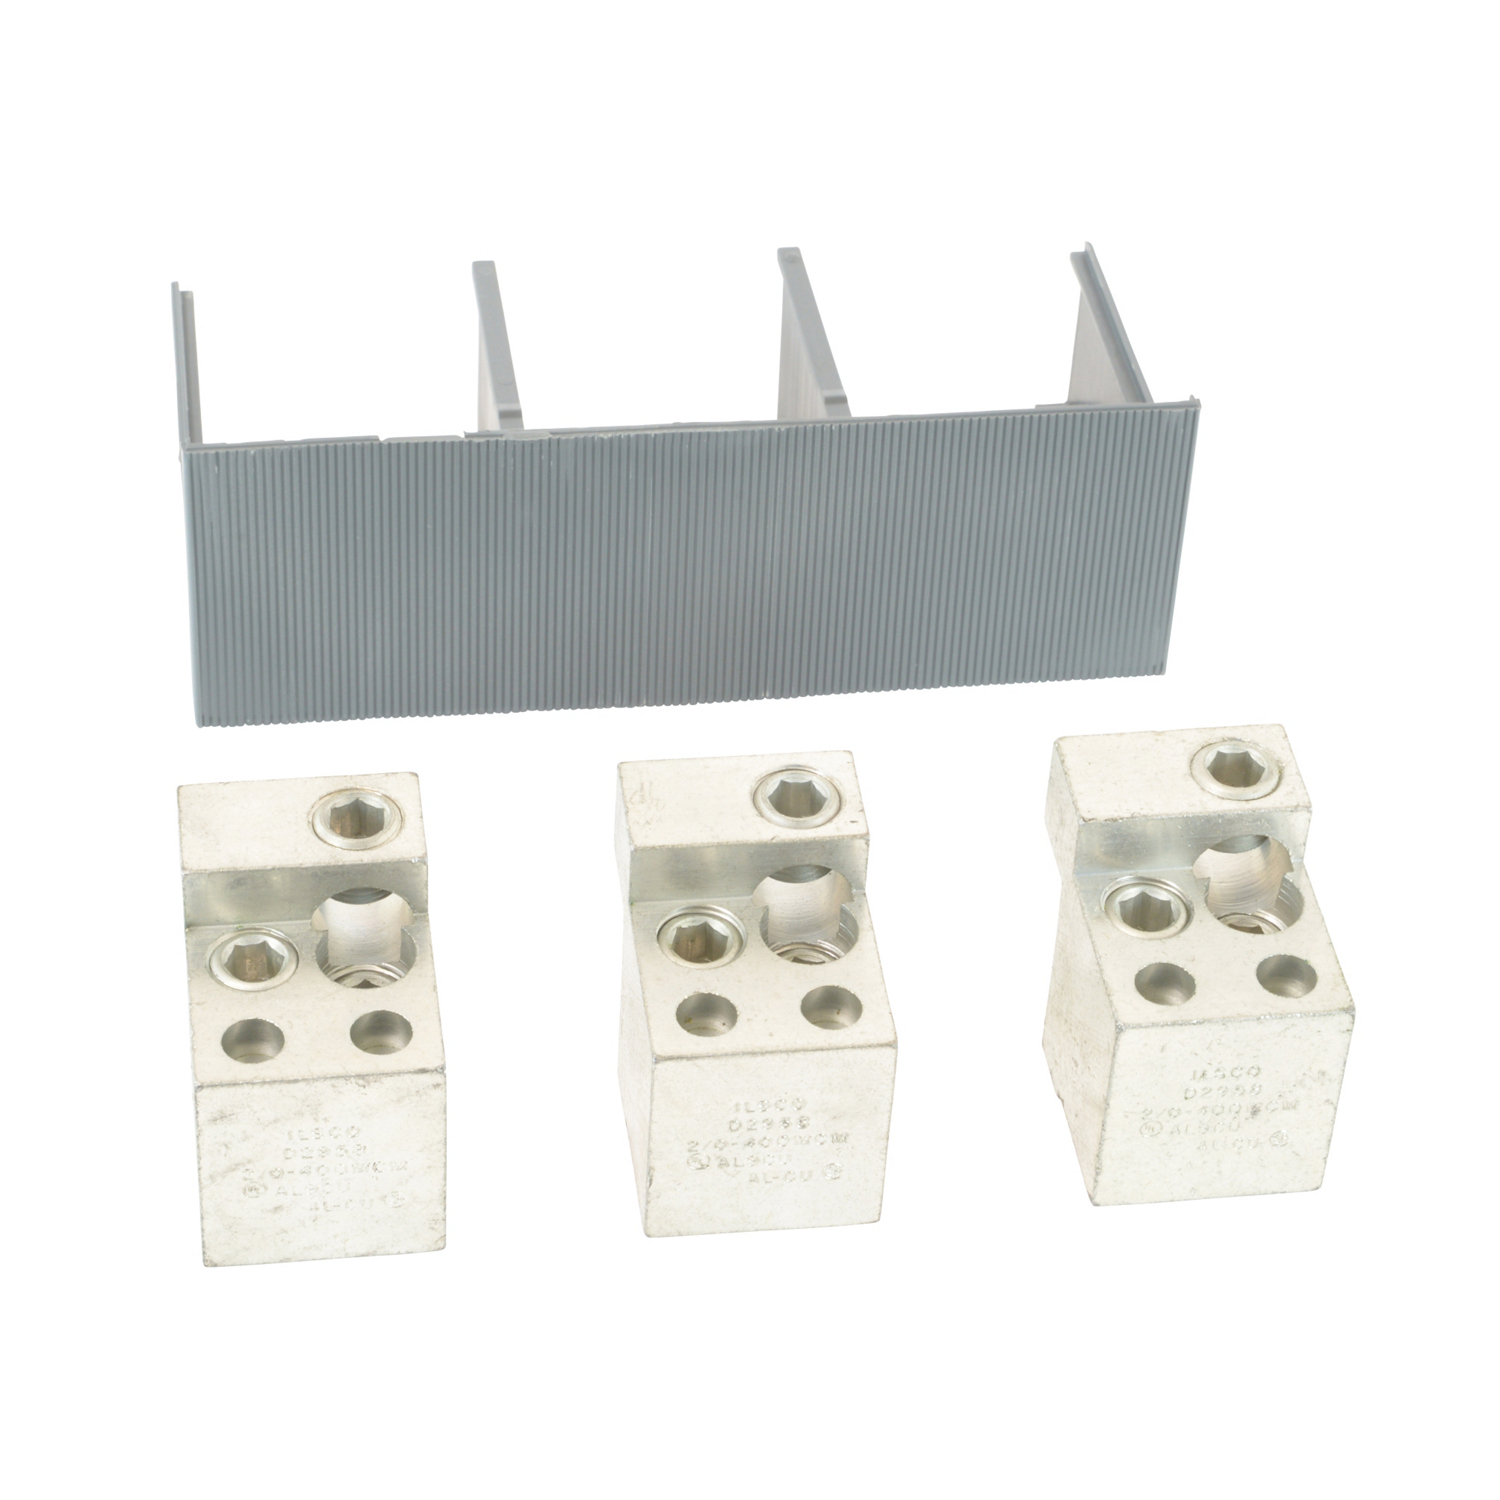 ABB K6TJC Cable Lug Kit